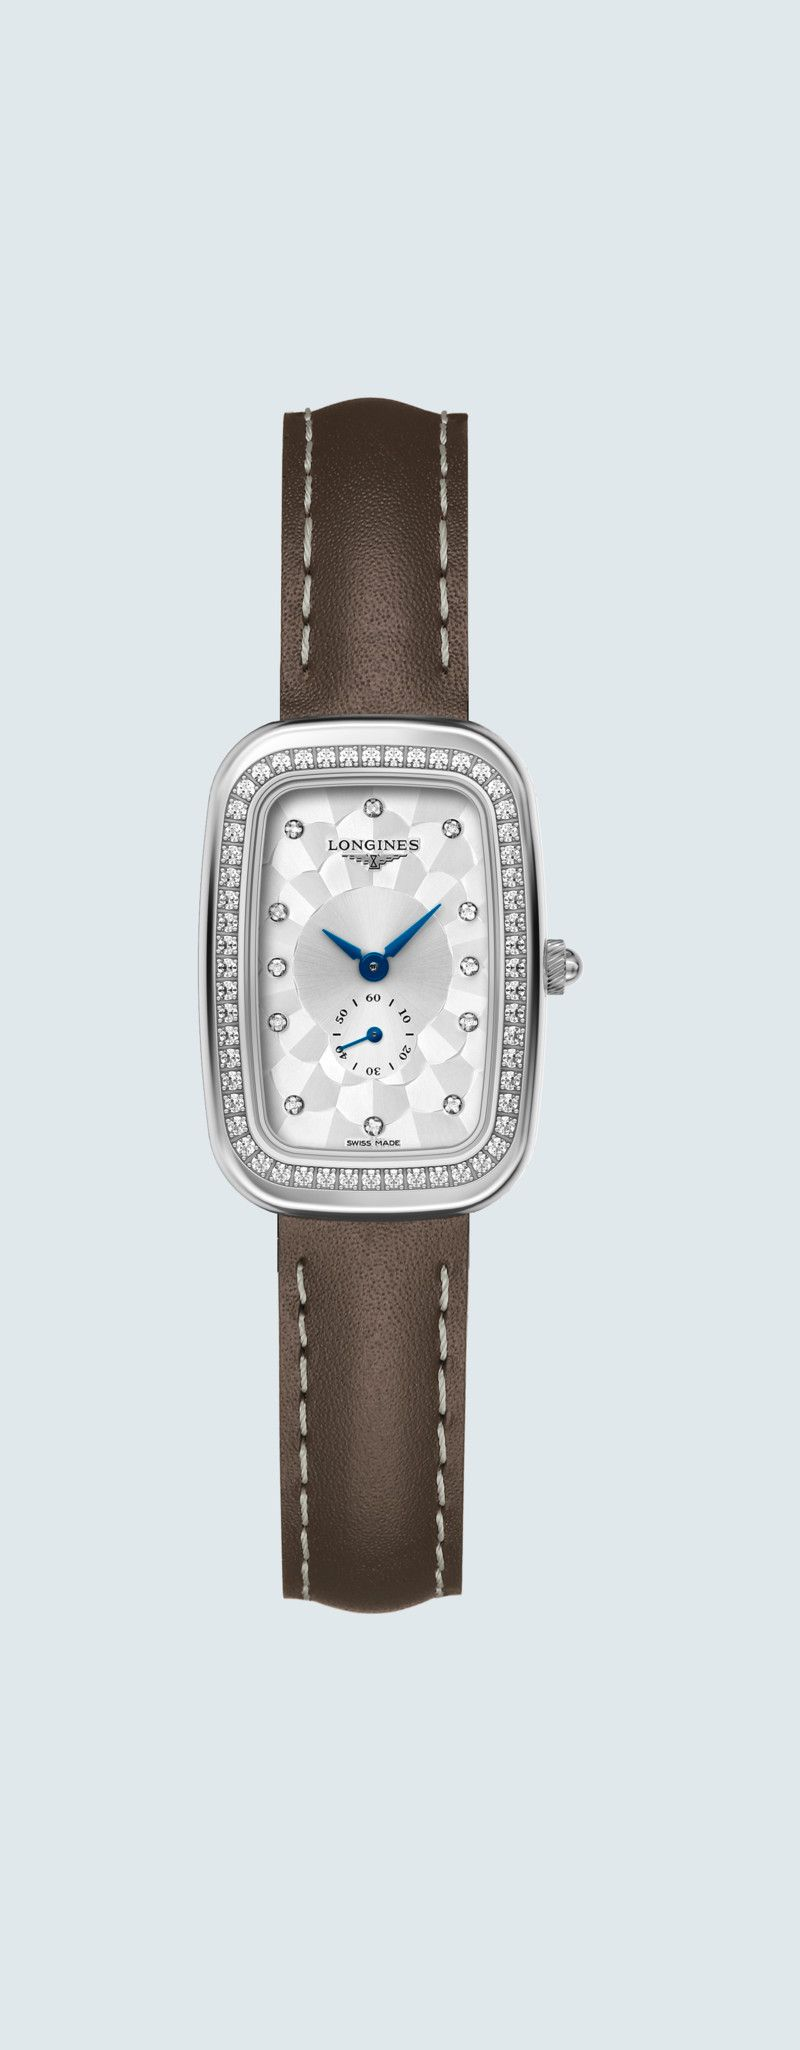 22.00 X 32.00 mm Edelstahl case with Silber dial and Lederarmband Braun strap - case zoom view